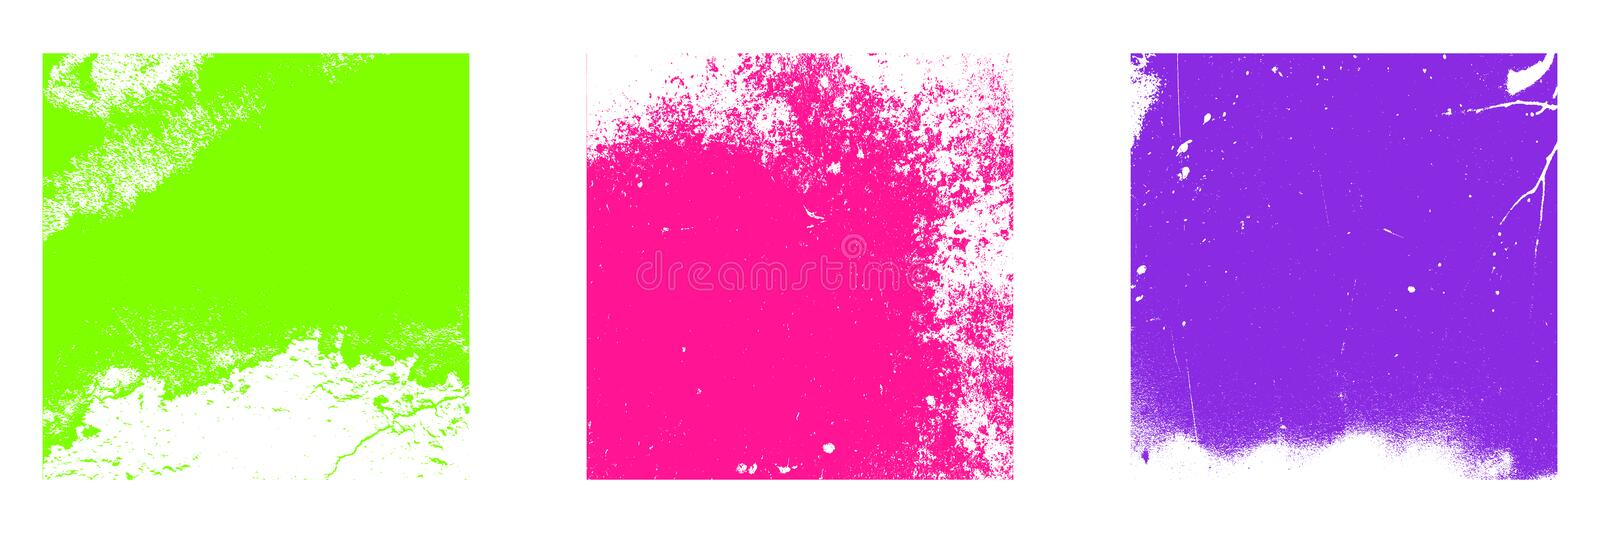 Color Grunge Textures stock illustration